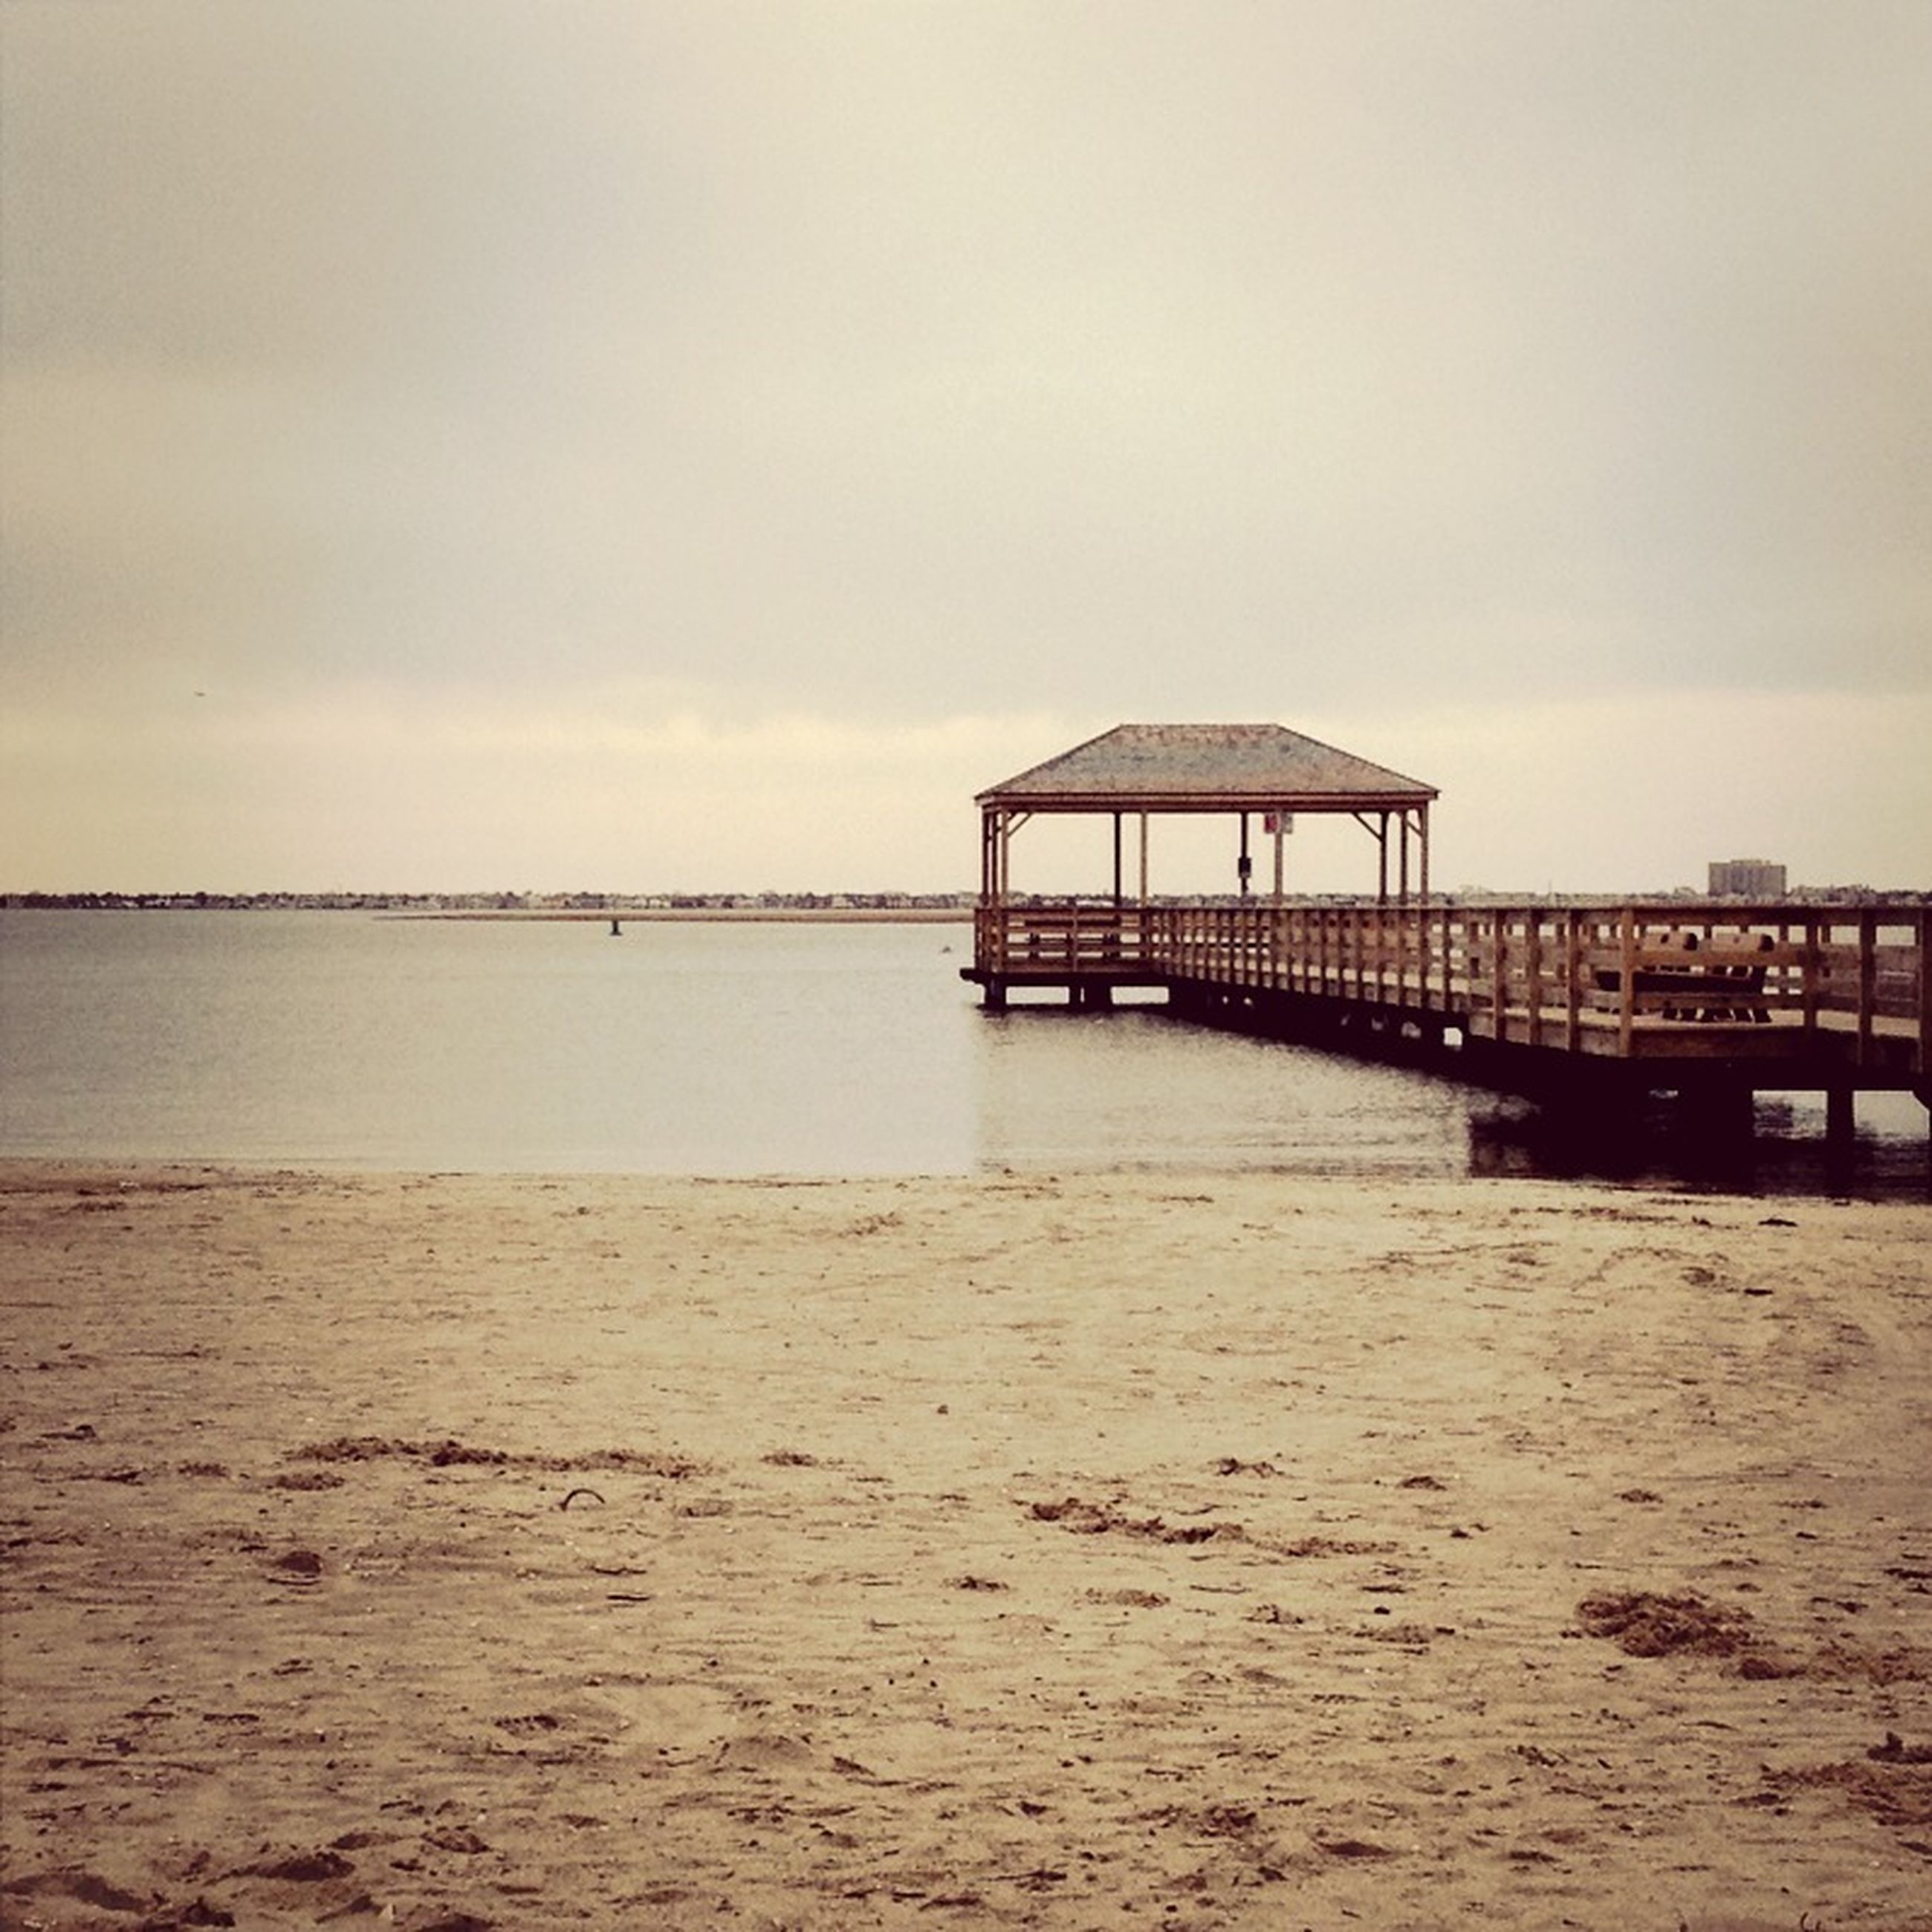 sea, water, beach, built structure, pier, sky, tranquil scene, tranquility, sand, architecture, scenics, shore, horizon over water, nature, beauty in nature, wood - material, idyllic, jetty, calm, outdoors